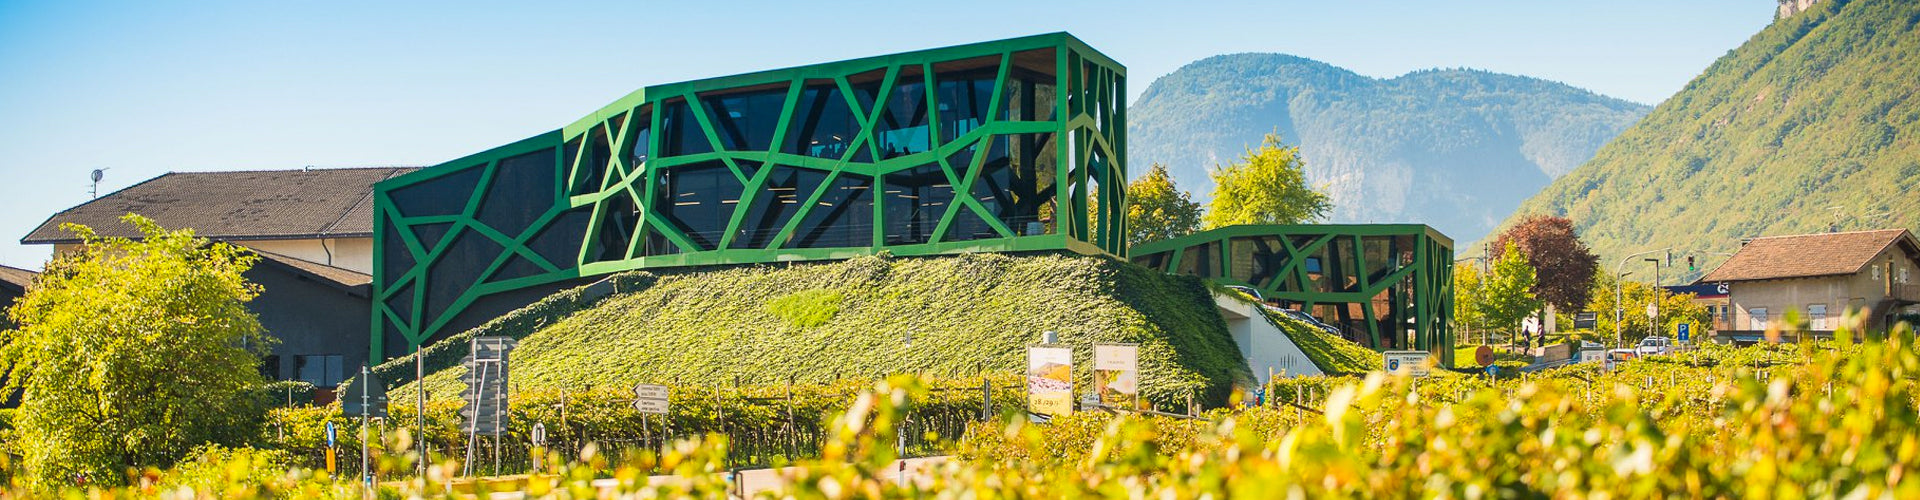 The Tramin Winery in Italy's Alto Adige